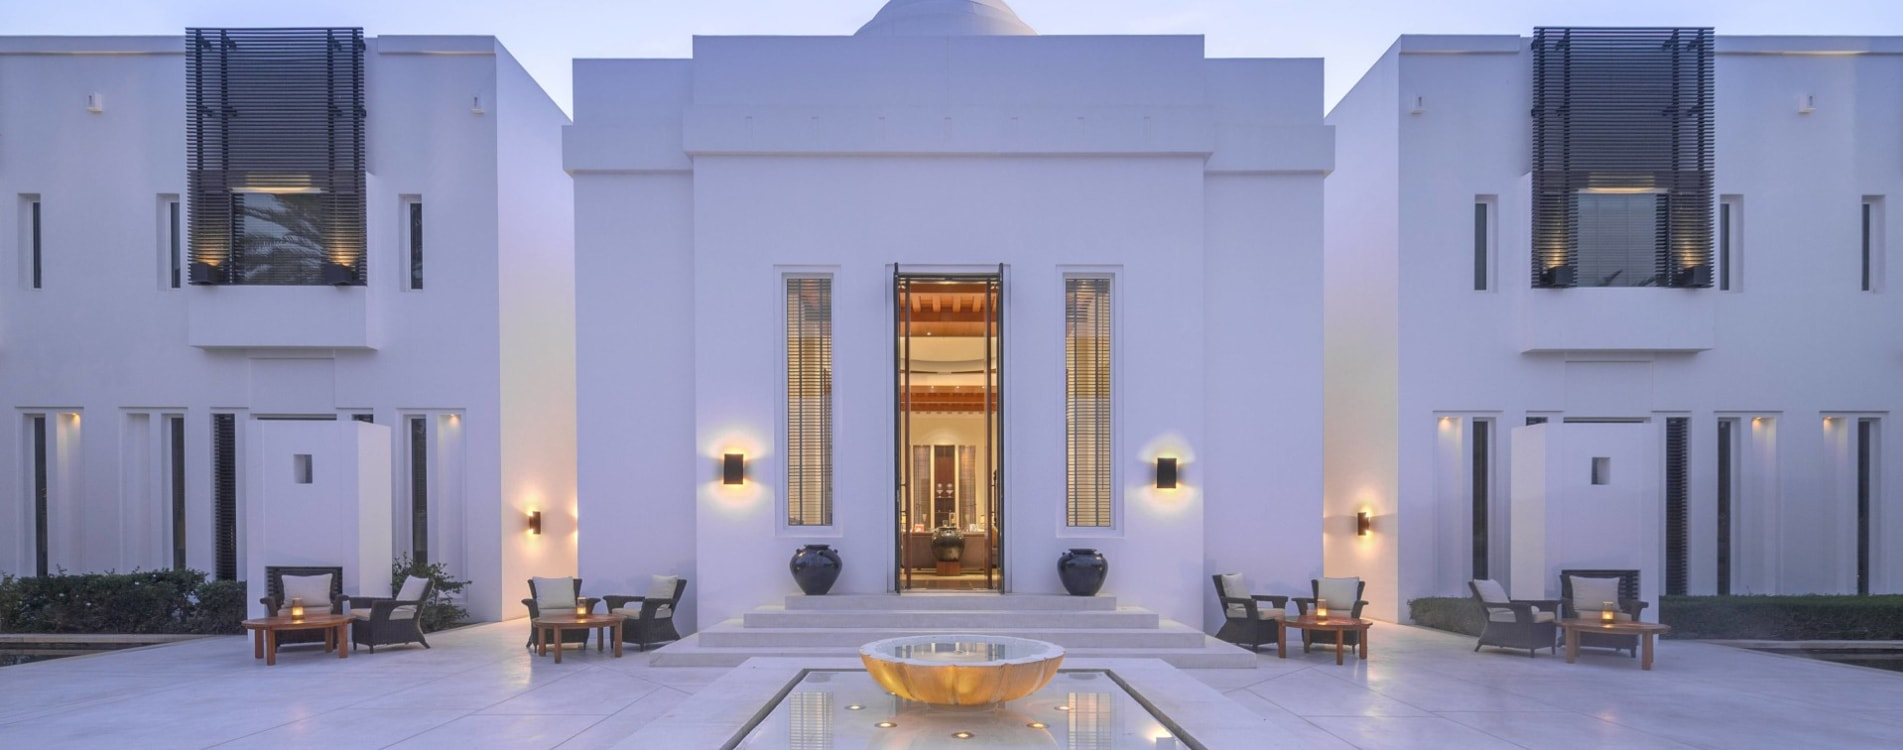 The-Chedi-Muscat-Facilities-The-Club-Lounge-Oman.jpg